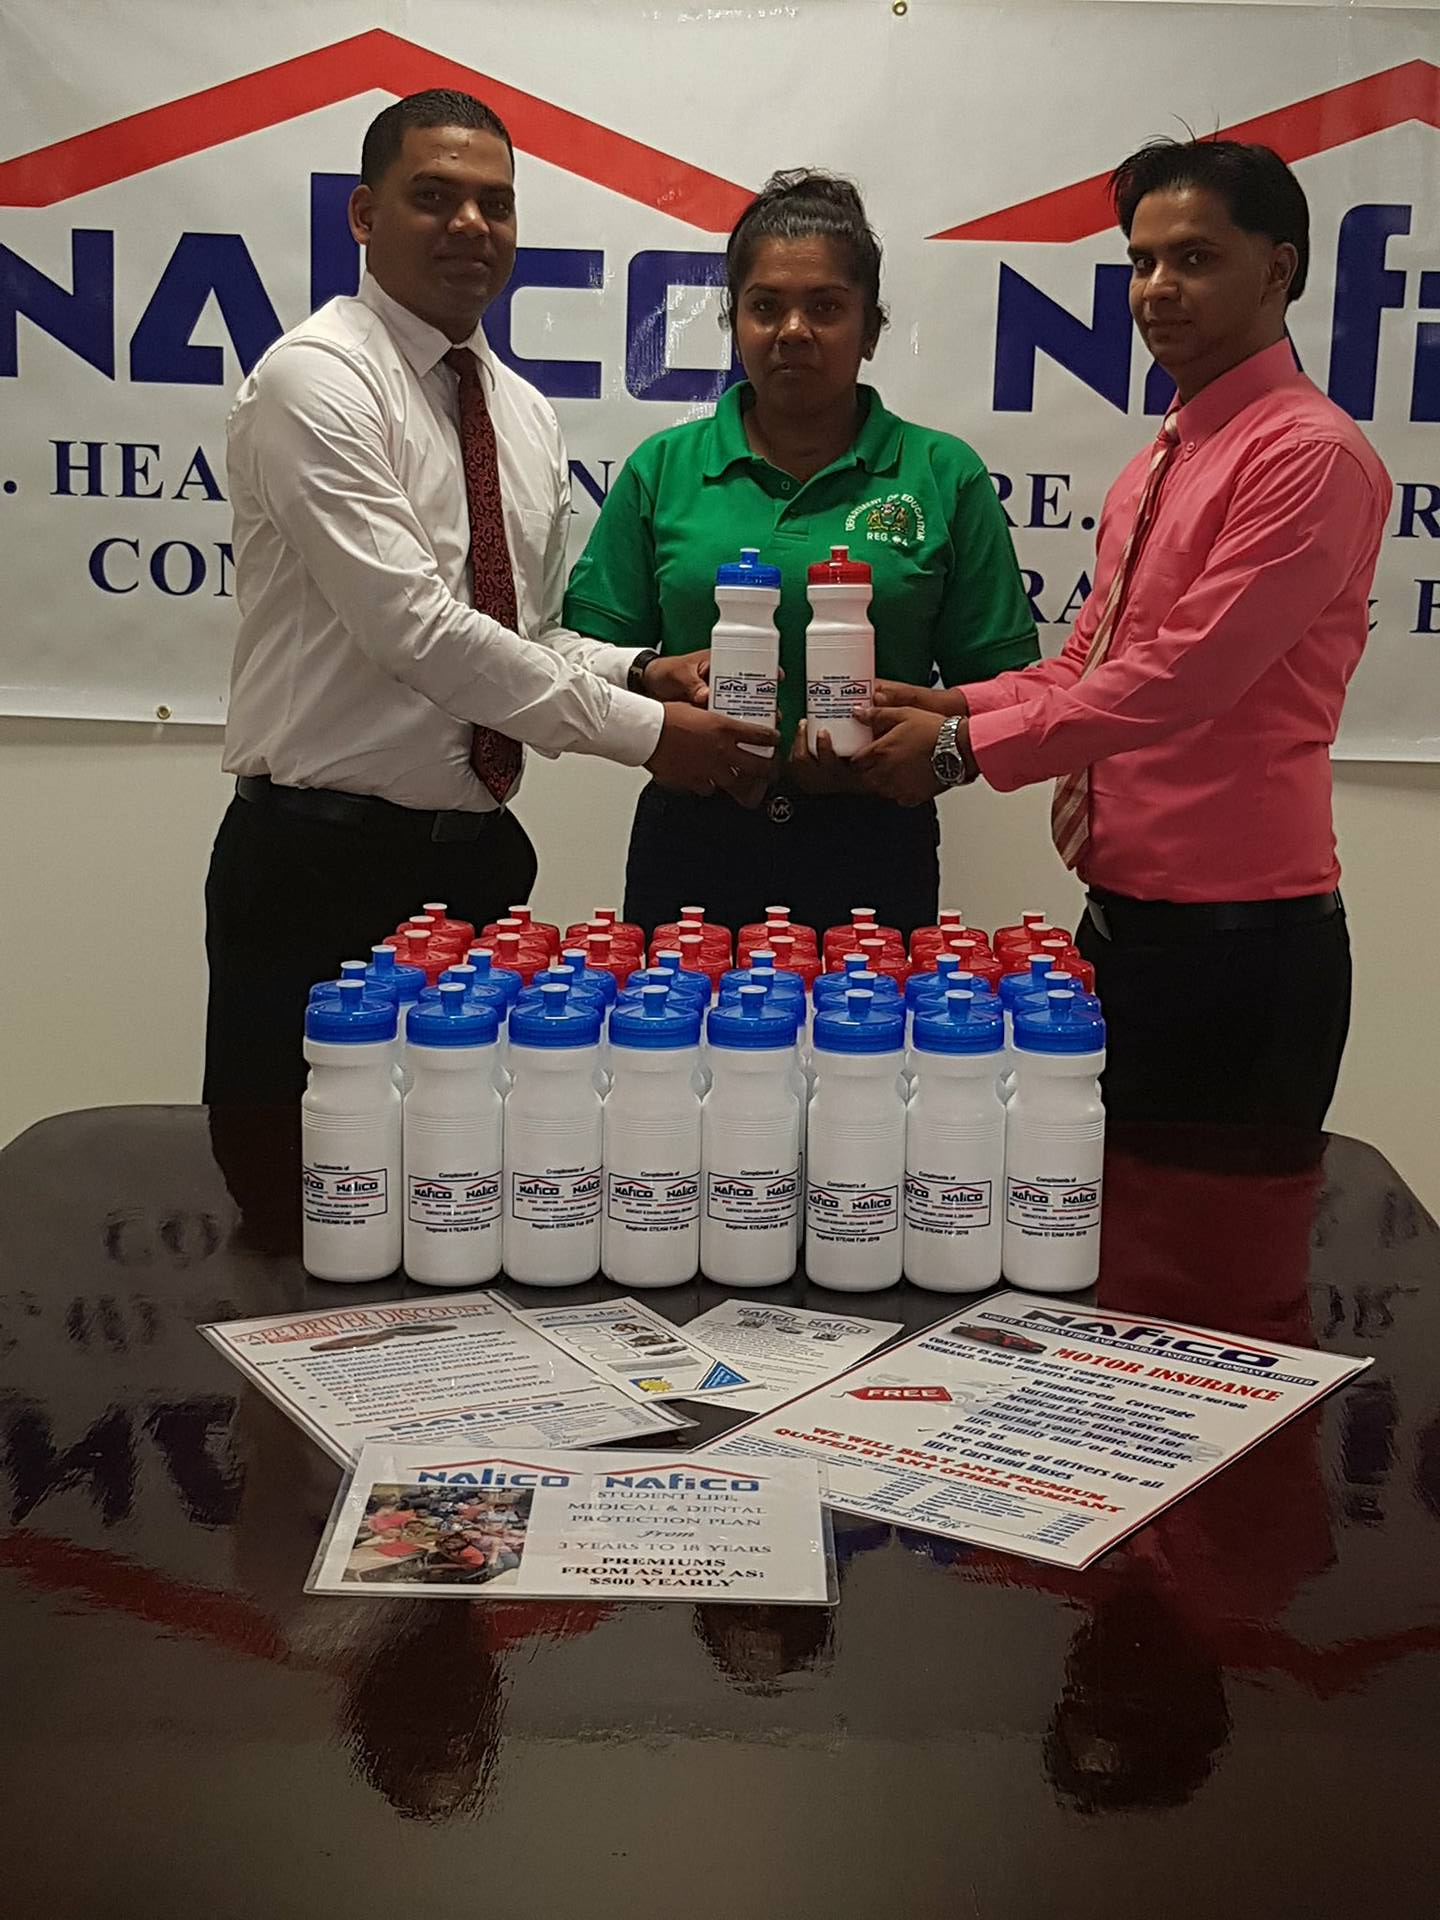 In picture, NALICO/NAFICO representatives, Mr. Anil Singh, Fire Manager and Mr. Hemendra Persaud, Internal Auditor hands over water bottles to Ms. Praneva Singh, a Graduate Senior Mistress at Annandale Primary School and a member of the STEAM FAIR team.